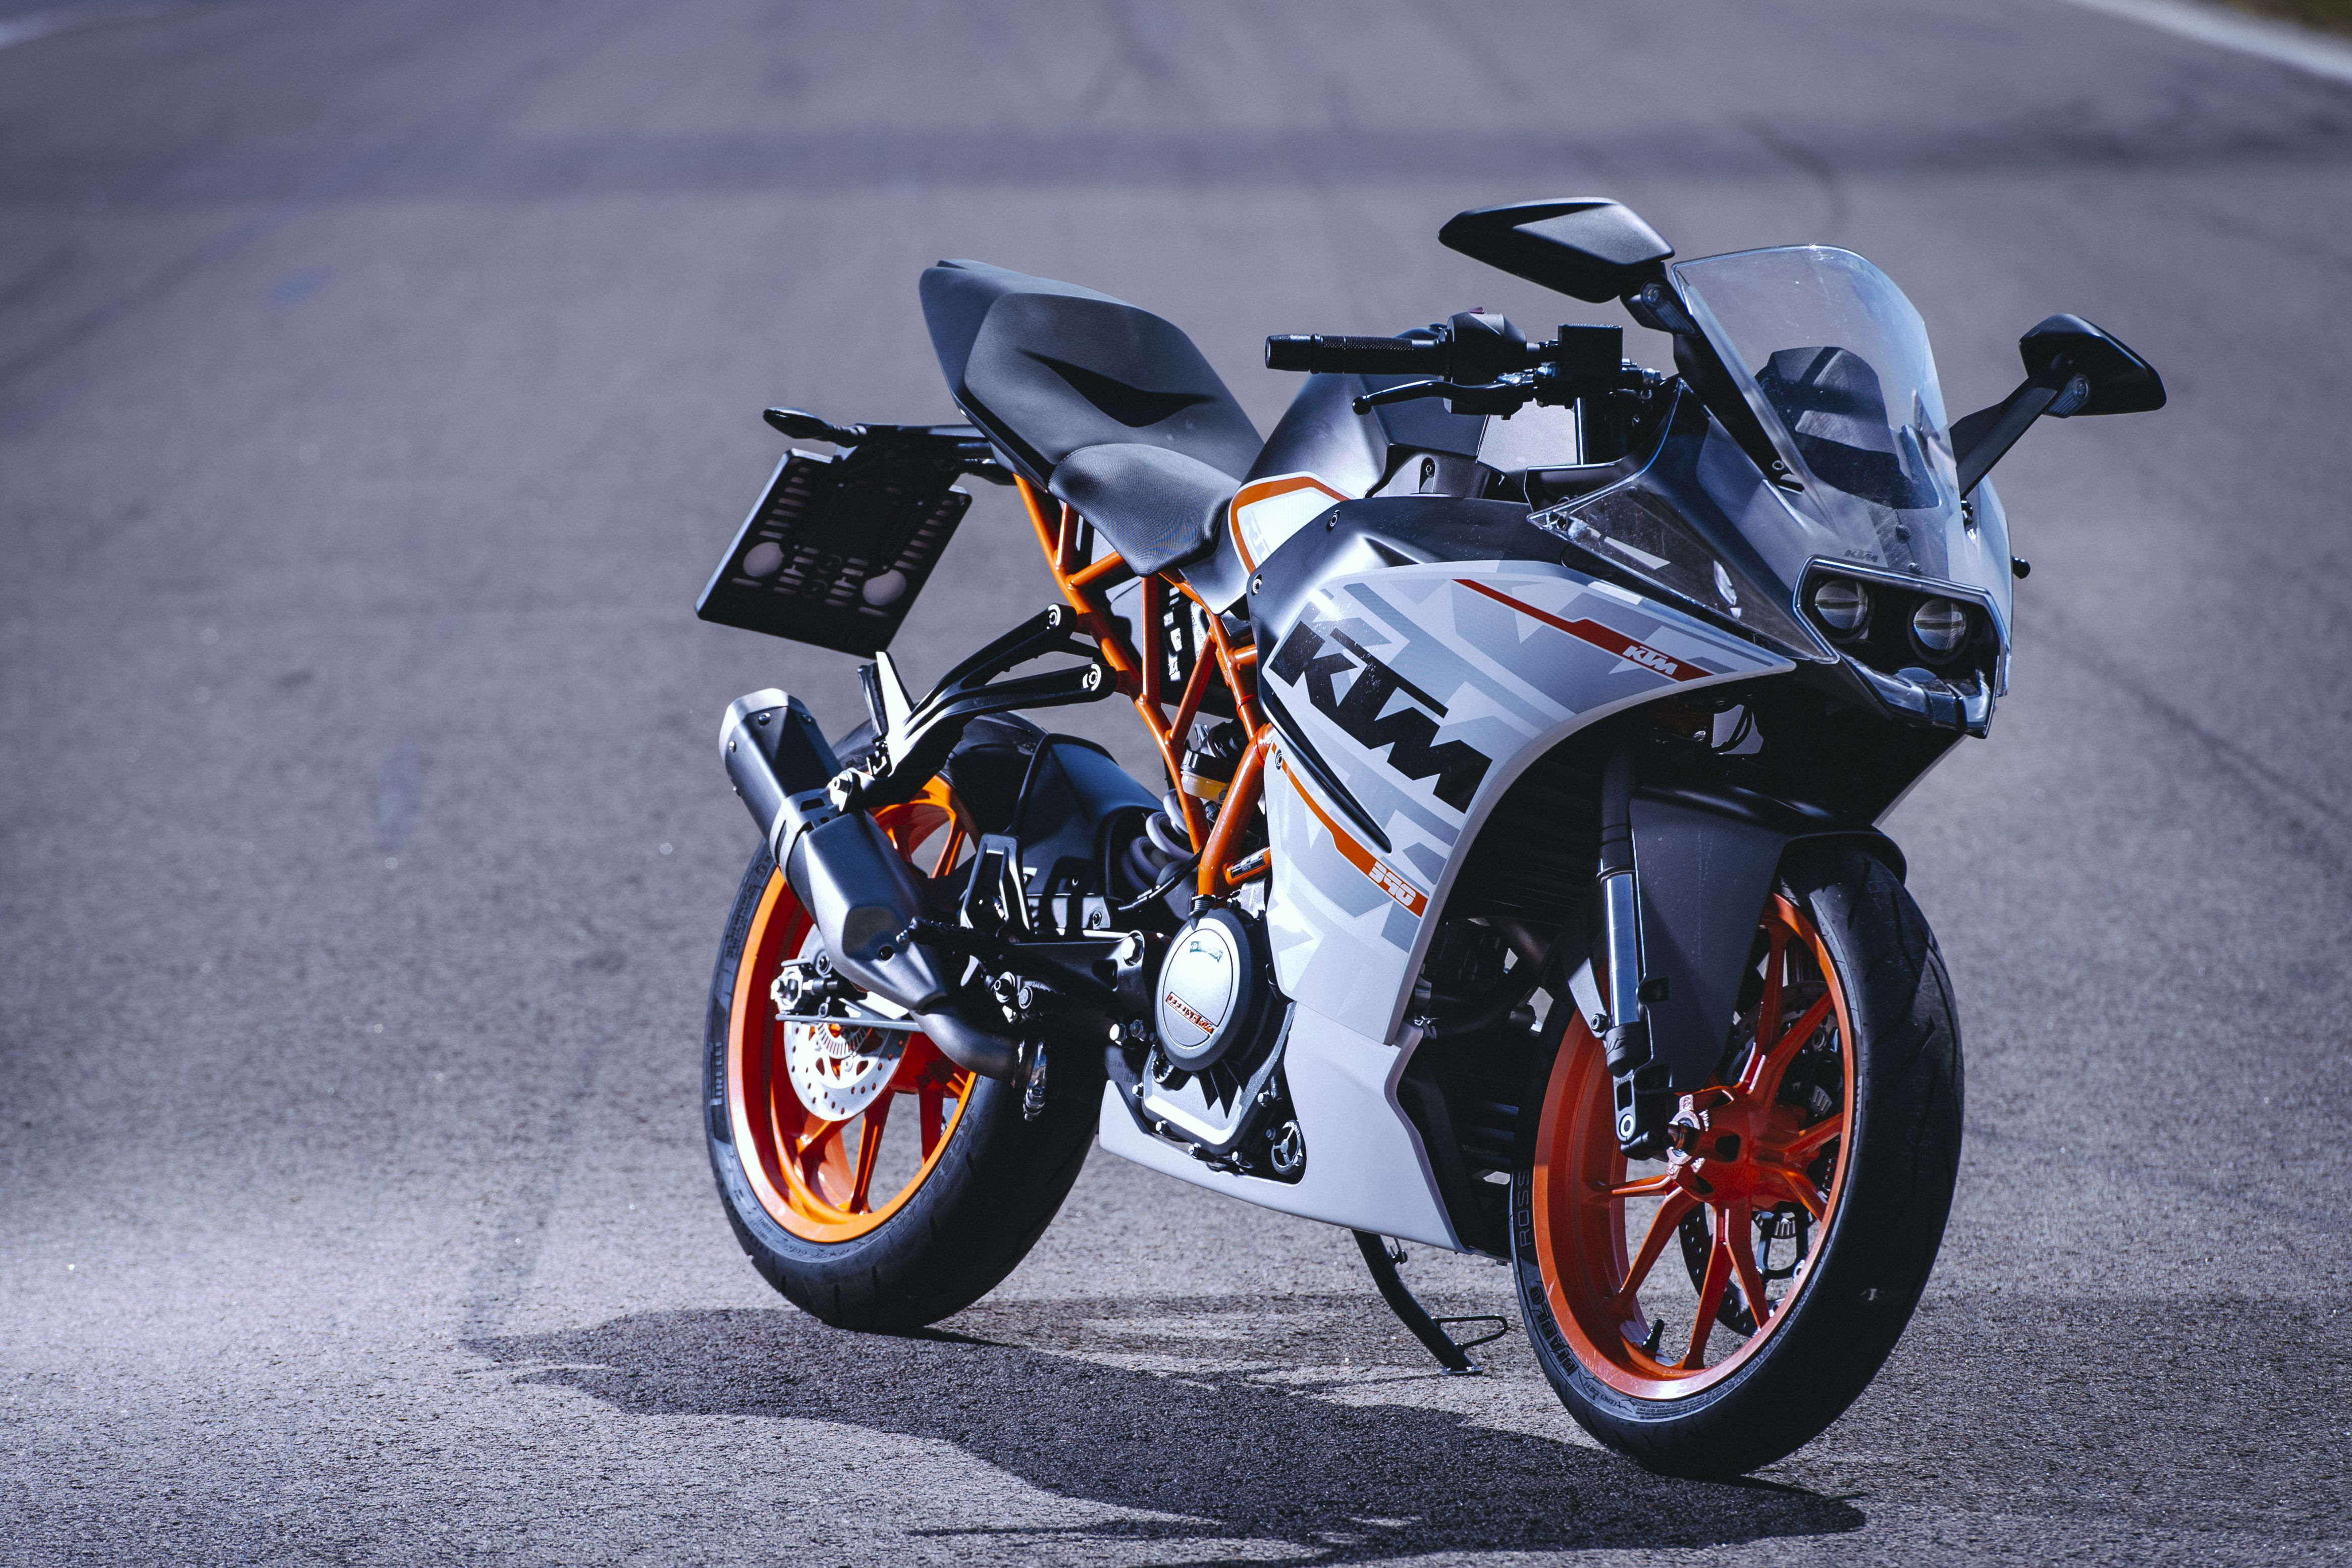 KTM updates the RC390 for 2016